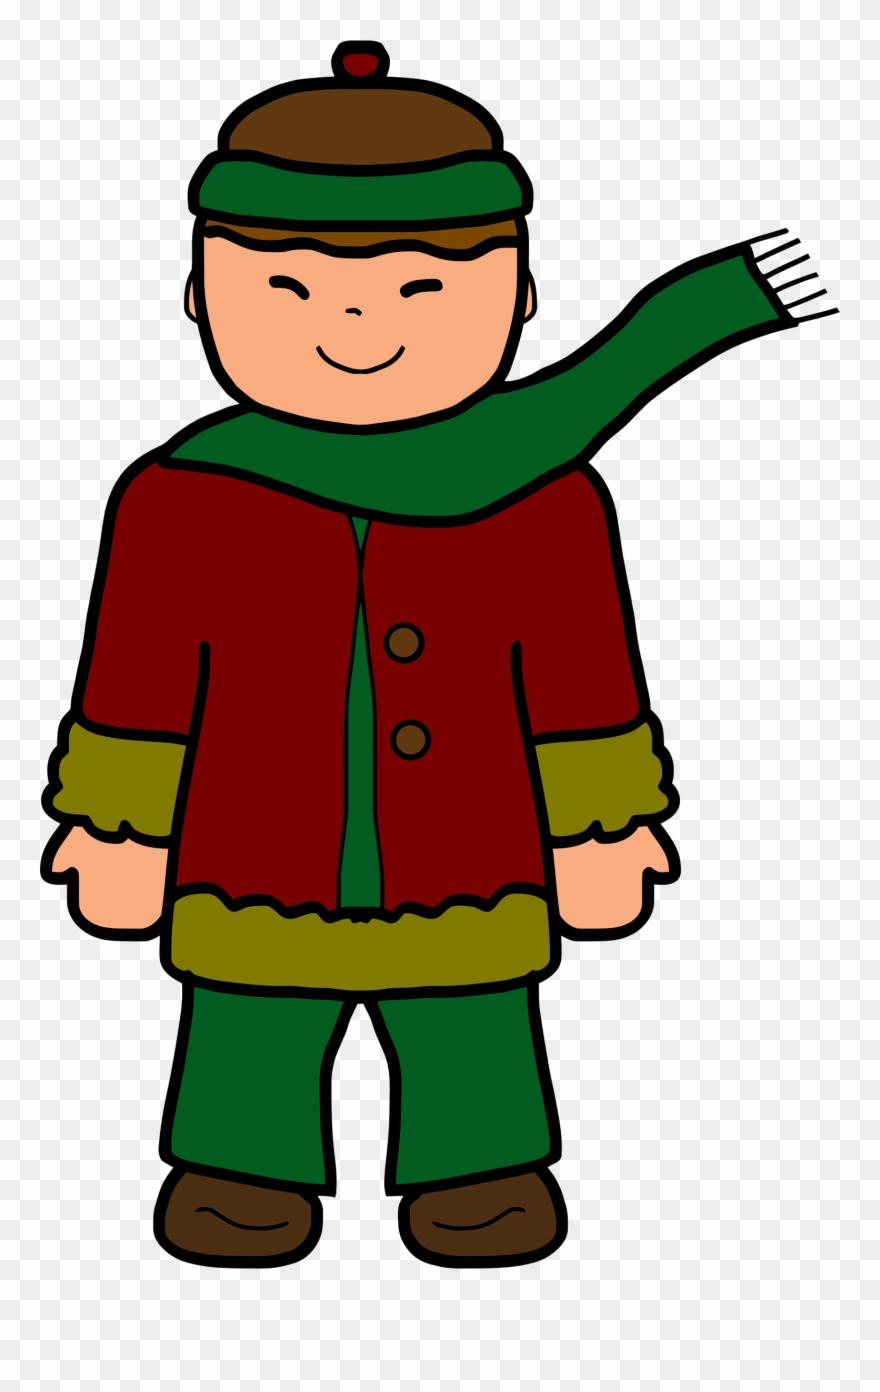 Guy in winter clothes clipart clip art transparent download Diner Clipart Kid - Boy In Winter Clothes Clipart - Png Download ... clip art transparent download